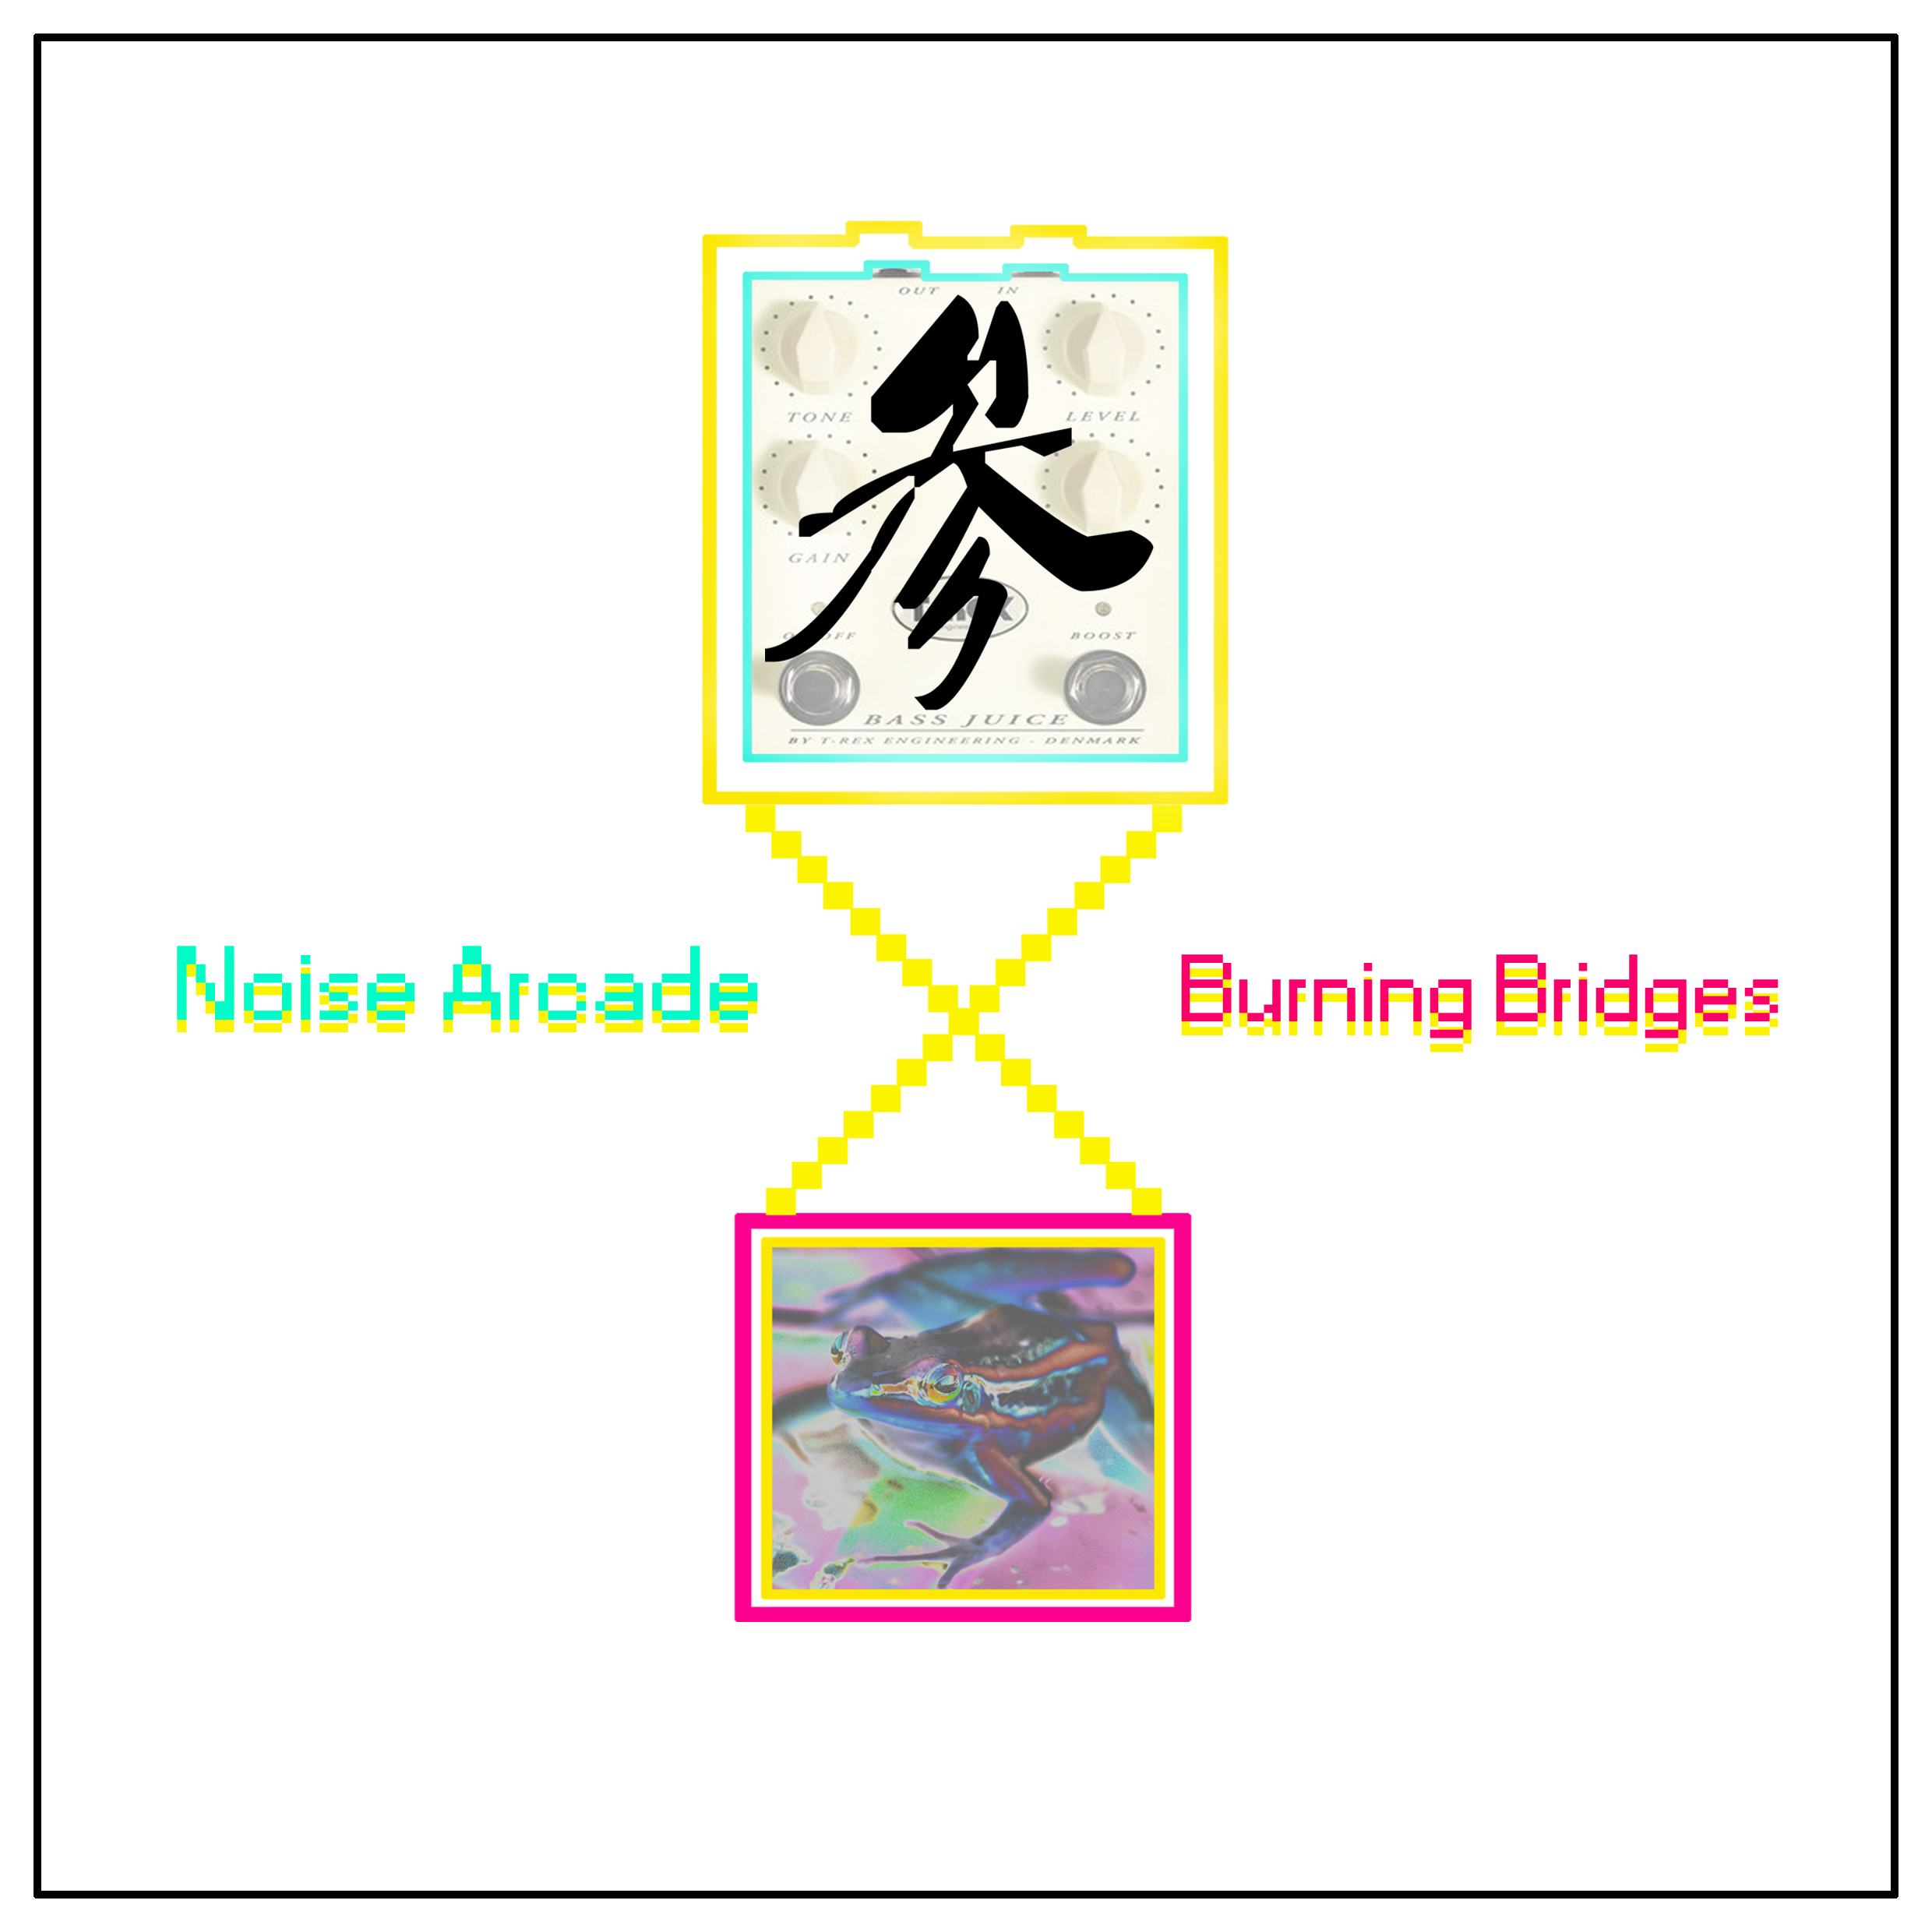 noise arcade burning bridges